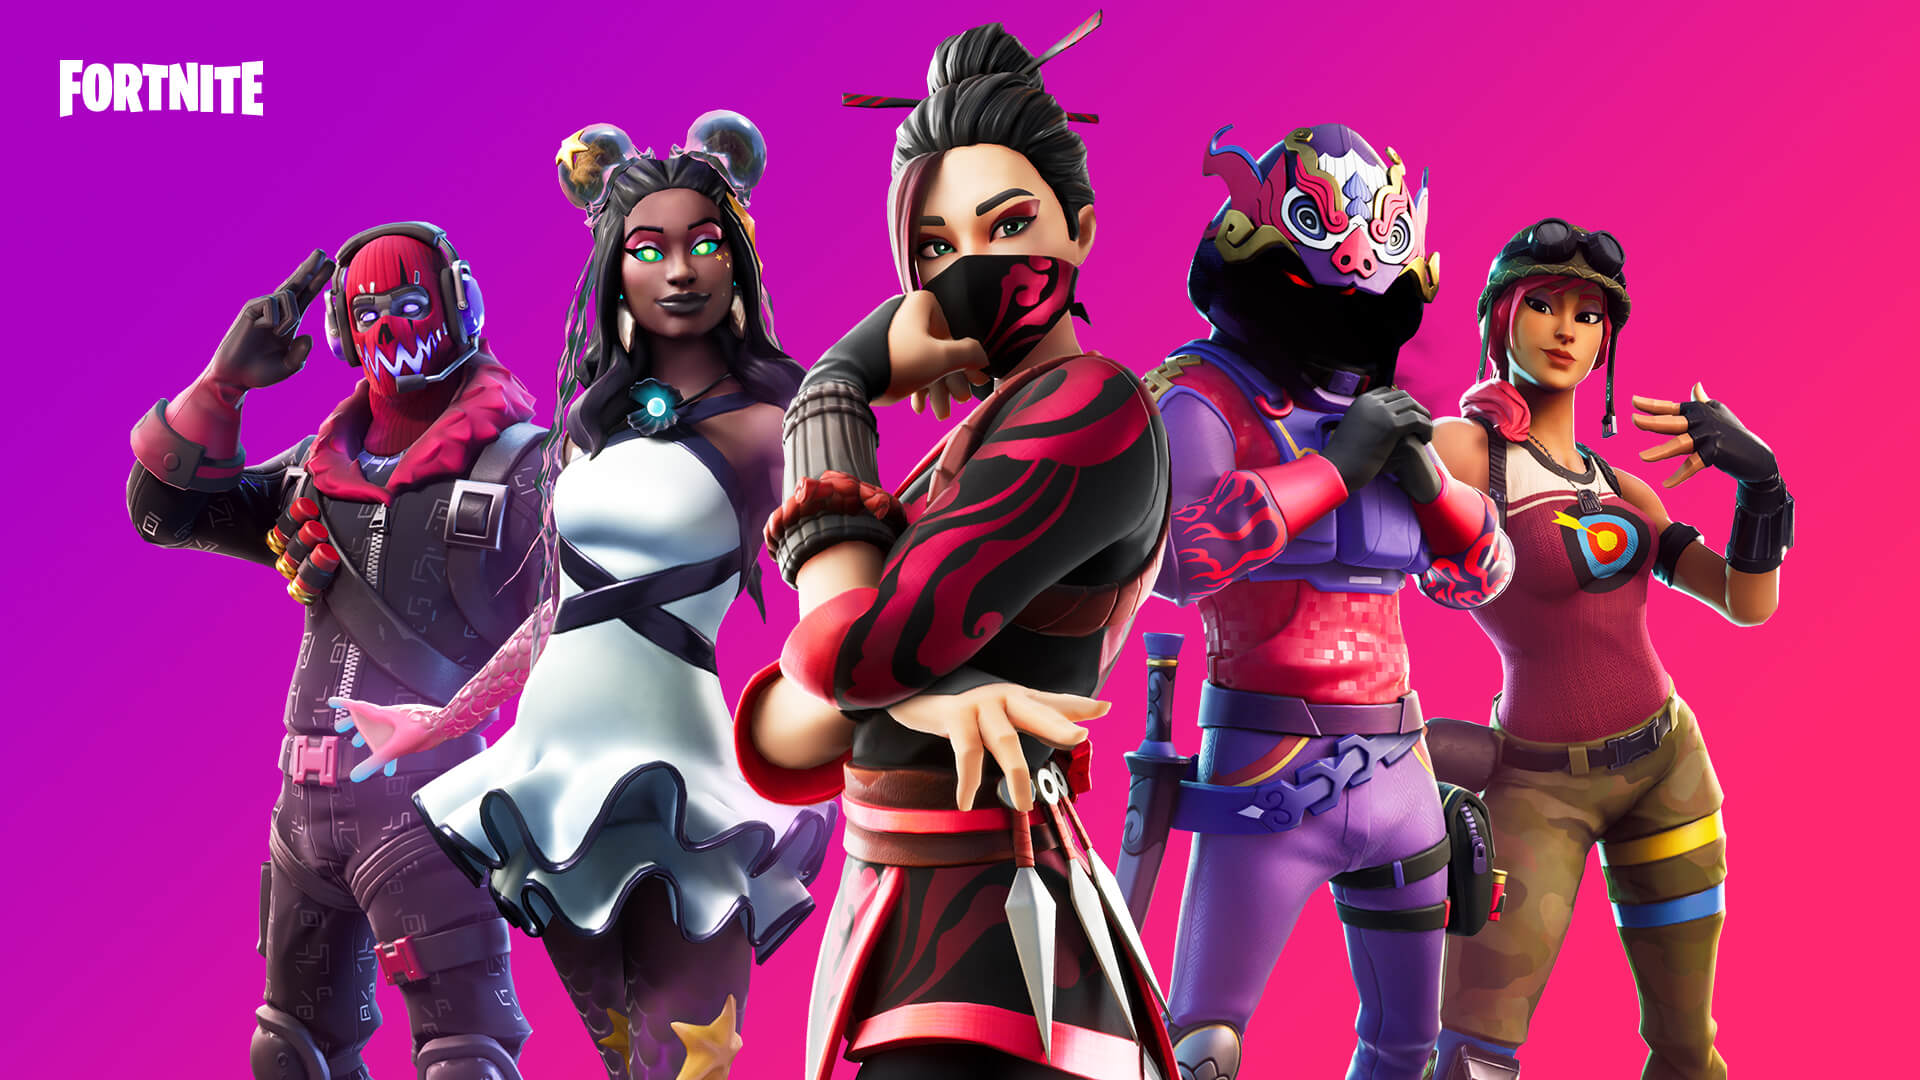 fortnite-skins-march-2021:-all-the-skins-coming-to-fortnite-and-how-to-get-them